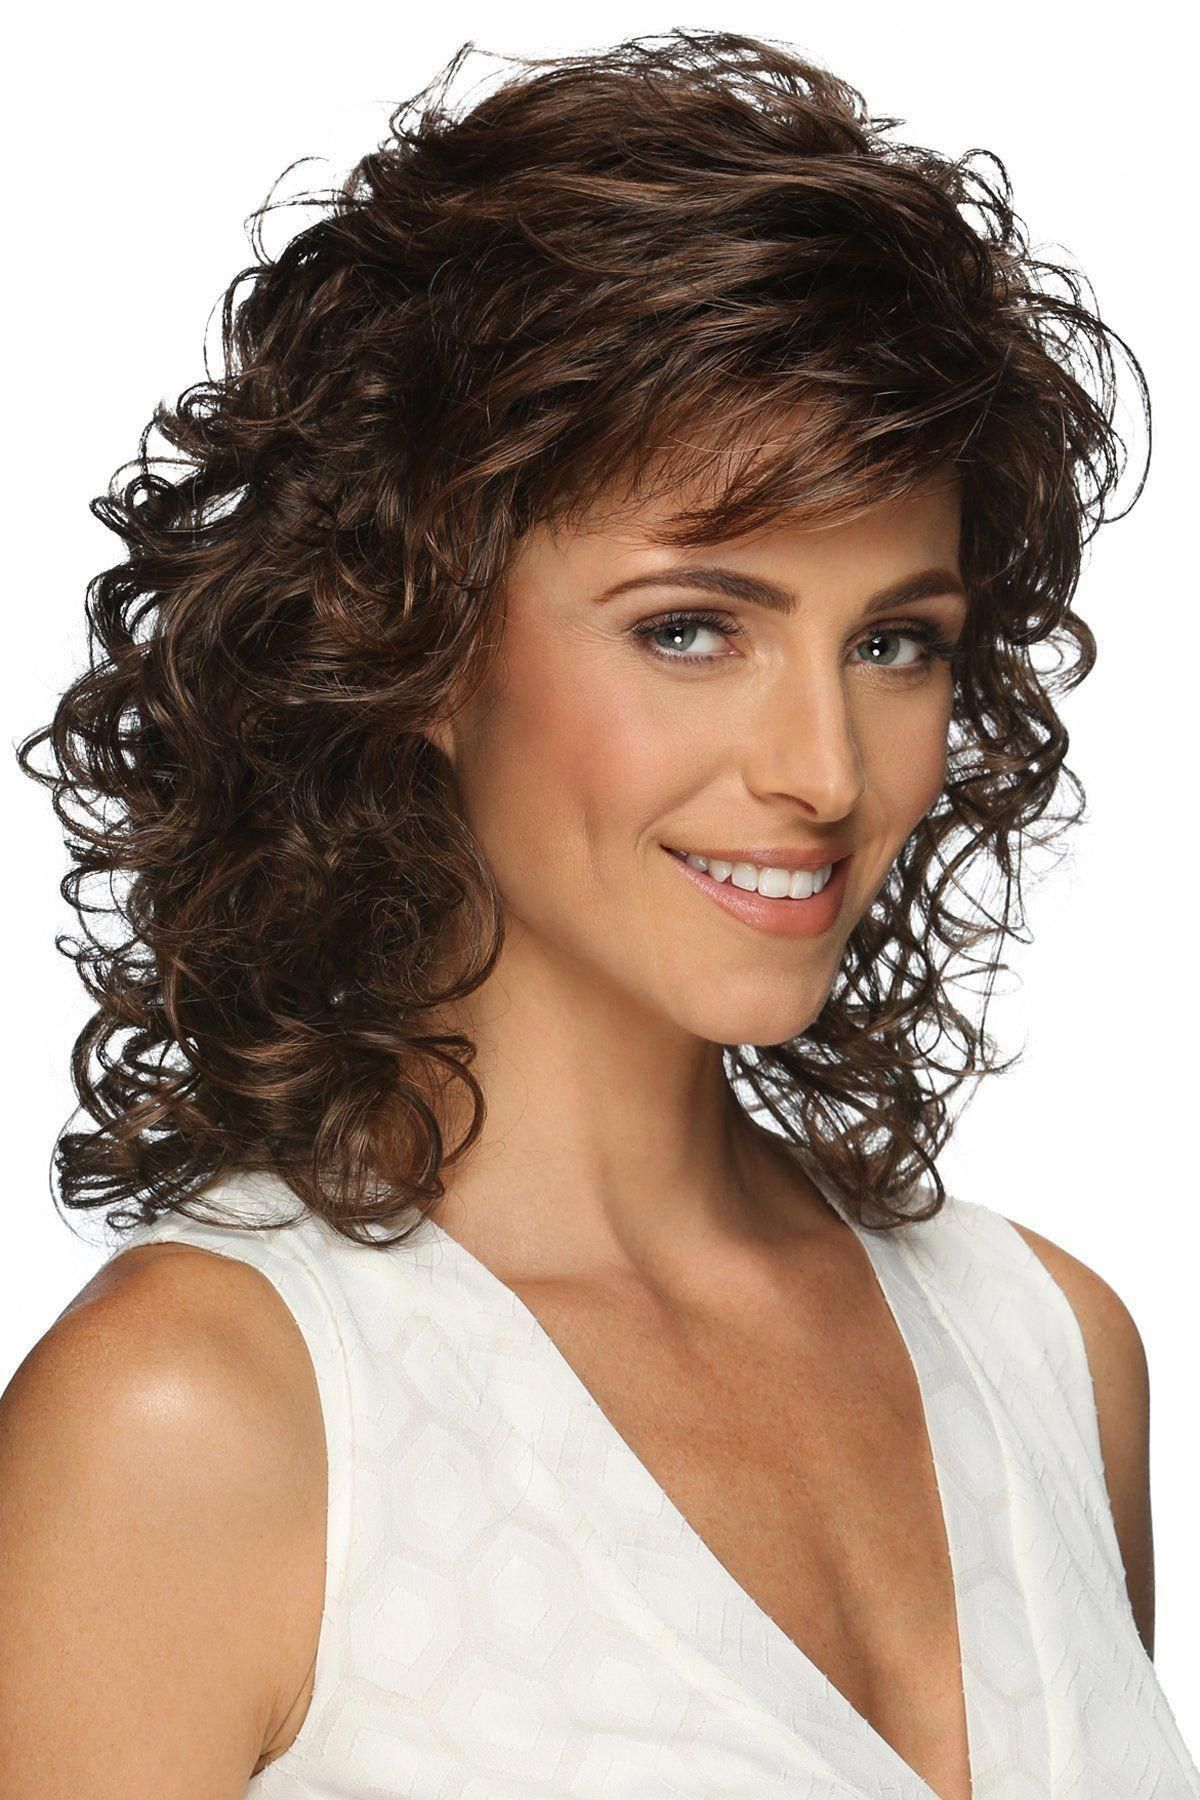 Estetica wigs jessica in 2020 curly hair styles